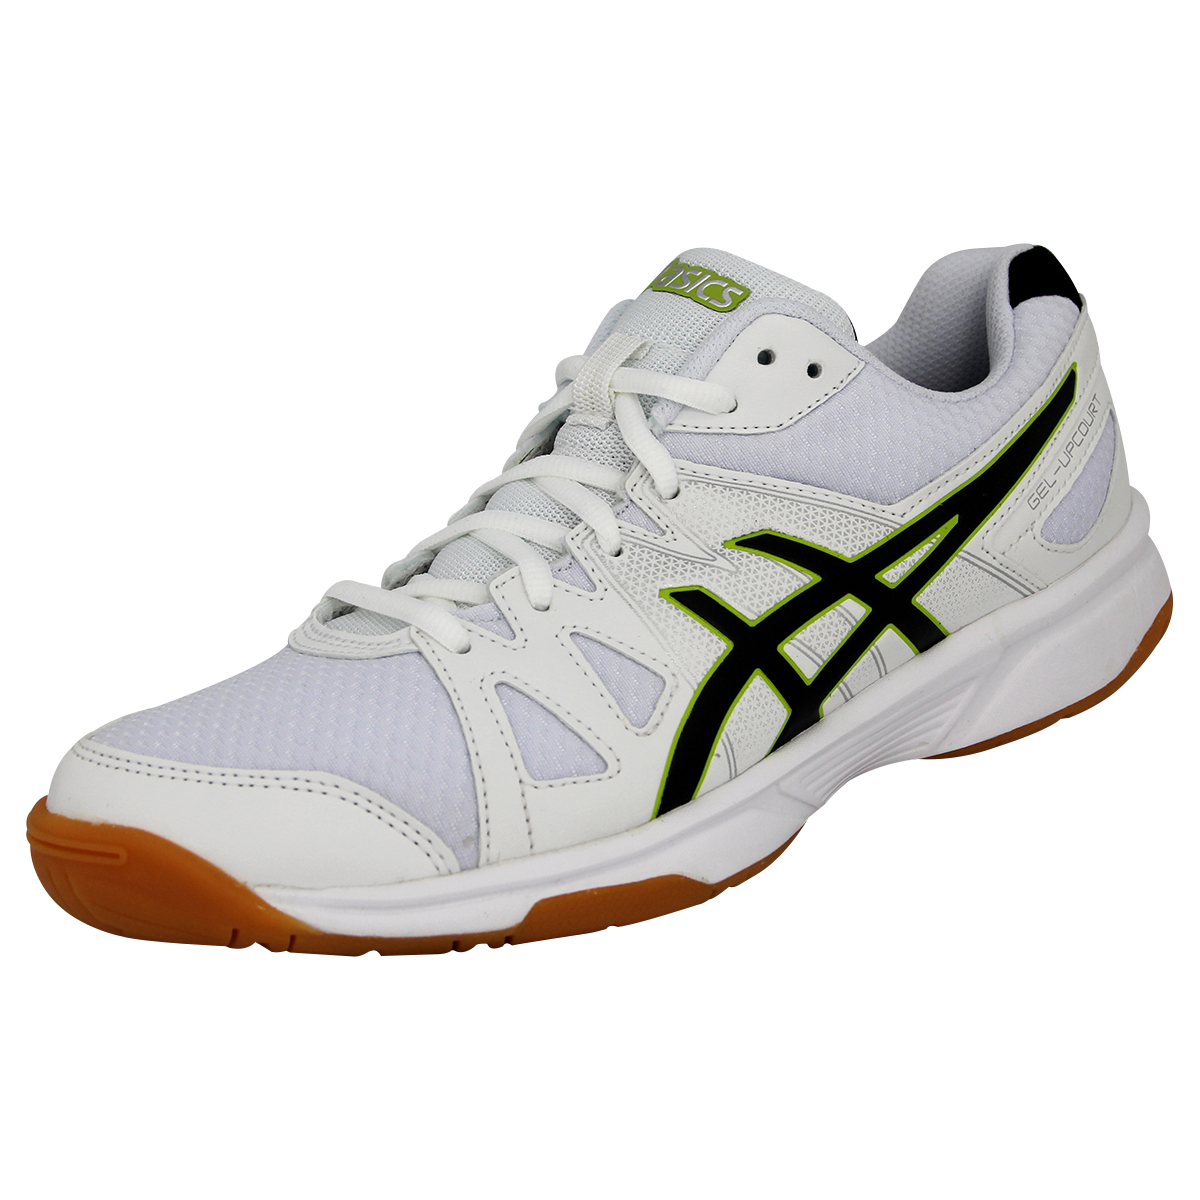 219fee2d367ba ASICS GEL UPCOURT Chaussures de Volleyball Homme - EUR 28,90 ...